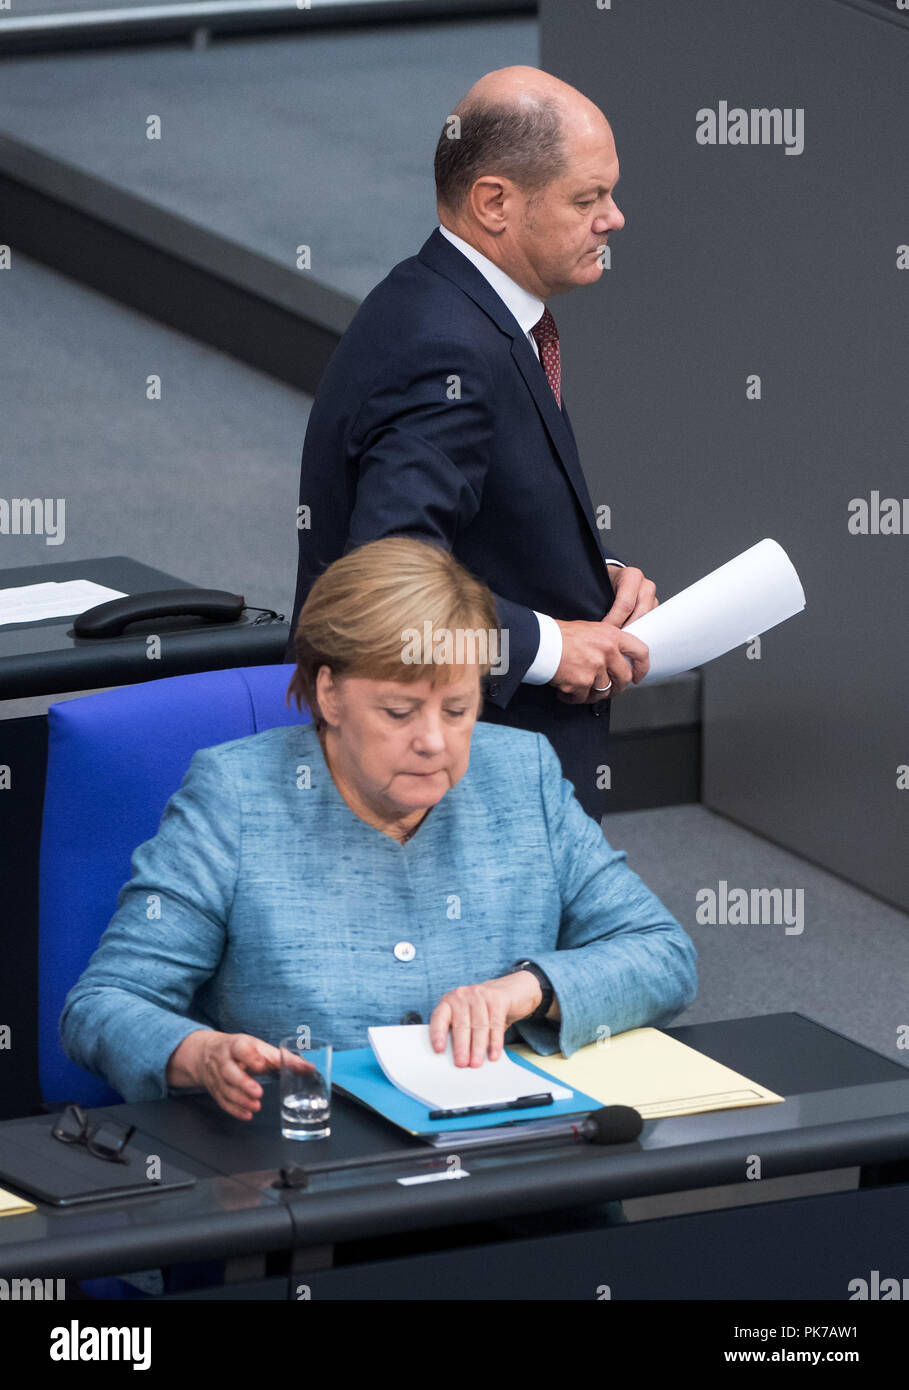 Berlin, Germany. 11 September 2018, Berlin: Olaf Scholz (SPD), Federal Minister of Finance, passes Chancellor Angela Merkel (CDU) to the lectern during the plenary session in the German Bundestag. The main topic of the 47th session of the 19th legislative period is the Federal Government's draft budget 2019 and the federal budget 2018 to 2022. Photo: Bernd von Jutrczenka/dpa Credit: dpa picture alliance/Alamy Live News - Stock Image